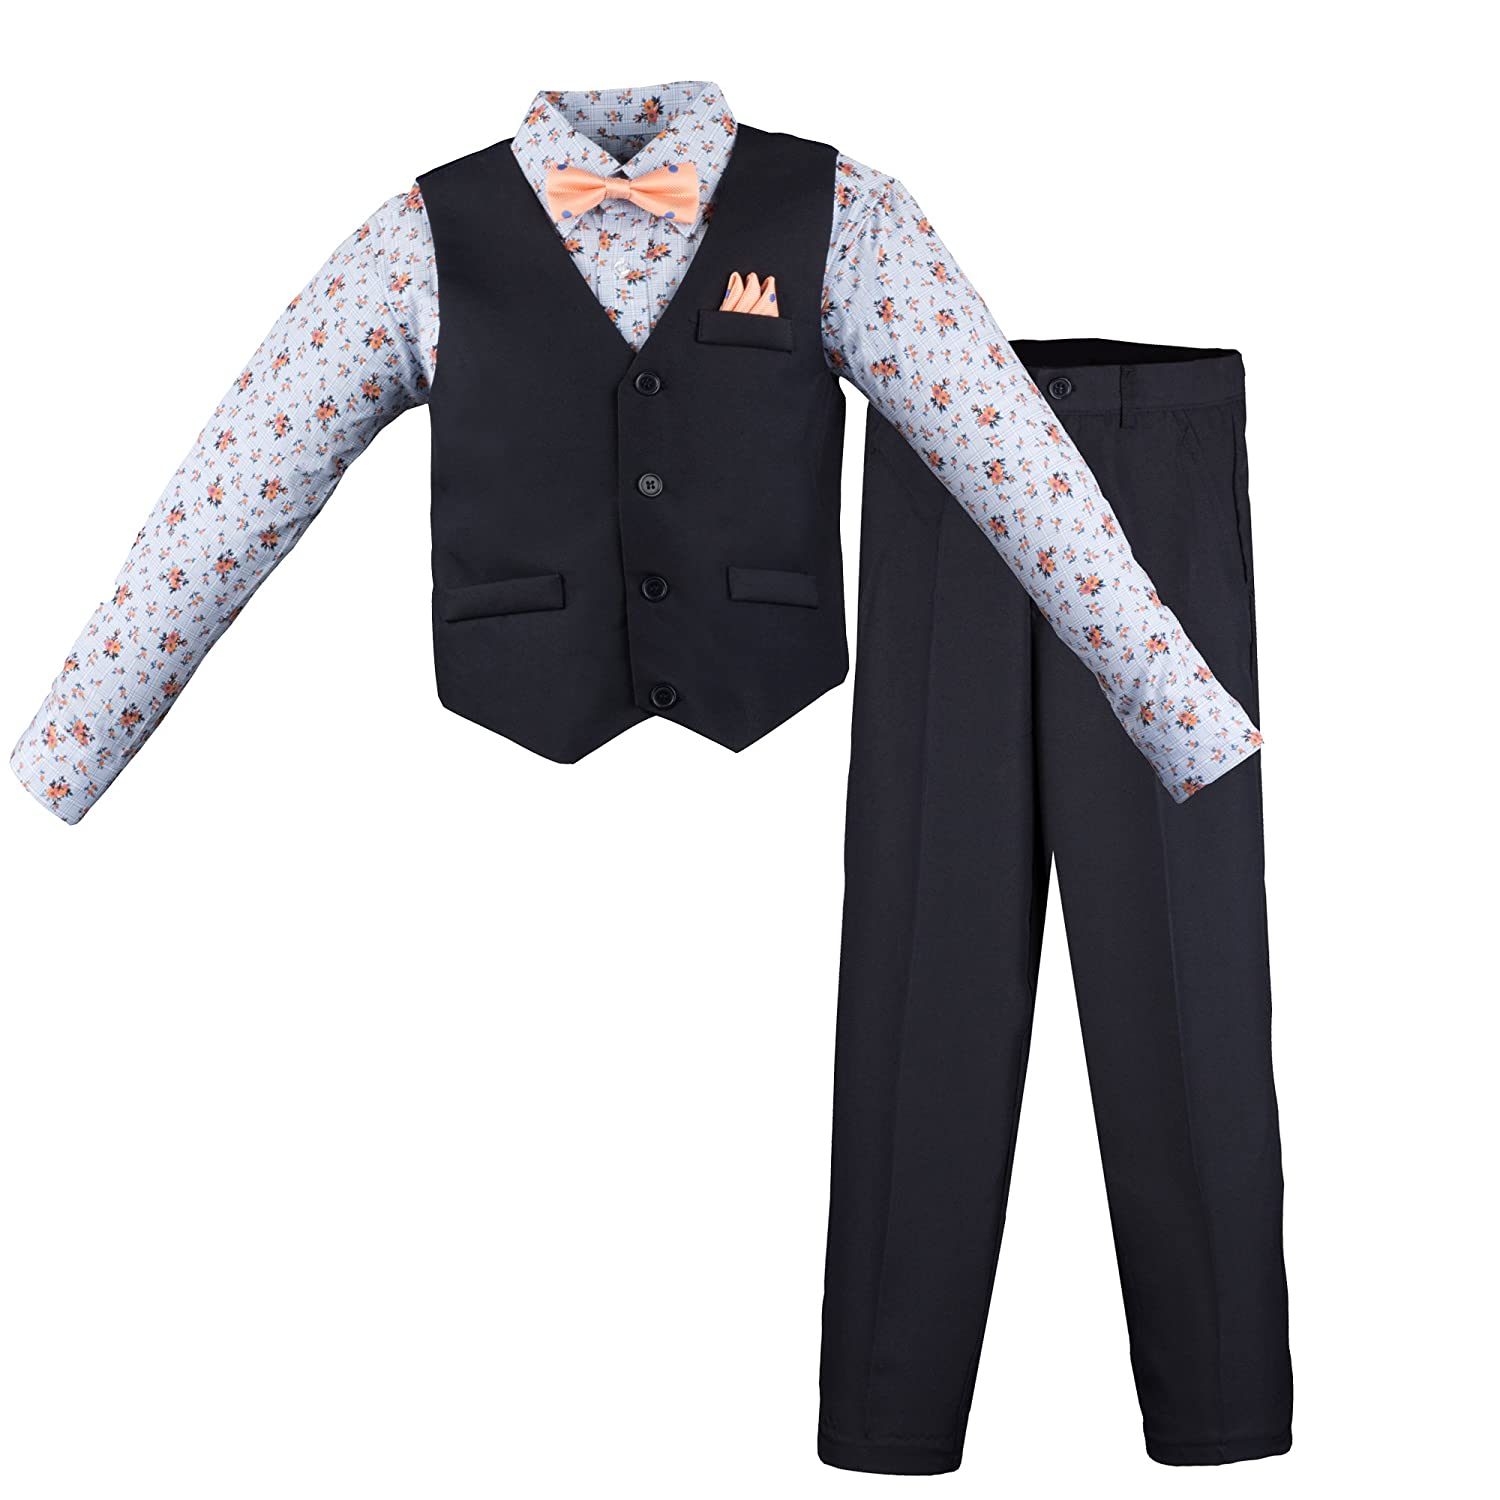 Vittorino Boys 4 Piece Suit Set with Vest Shirt Tie Pants and Hankerchief Boys-4Piece-Spring